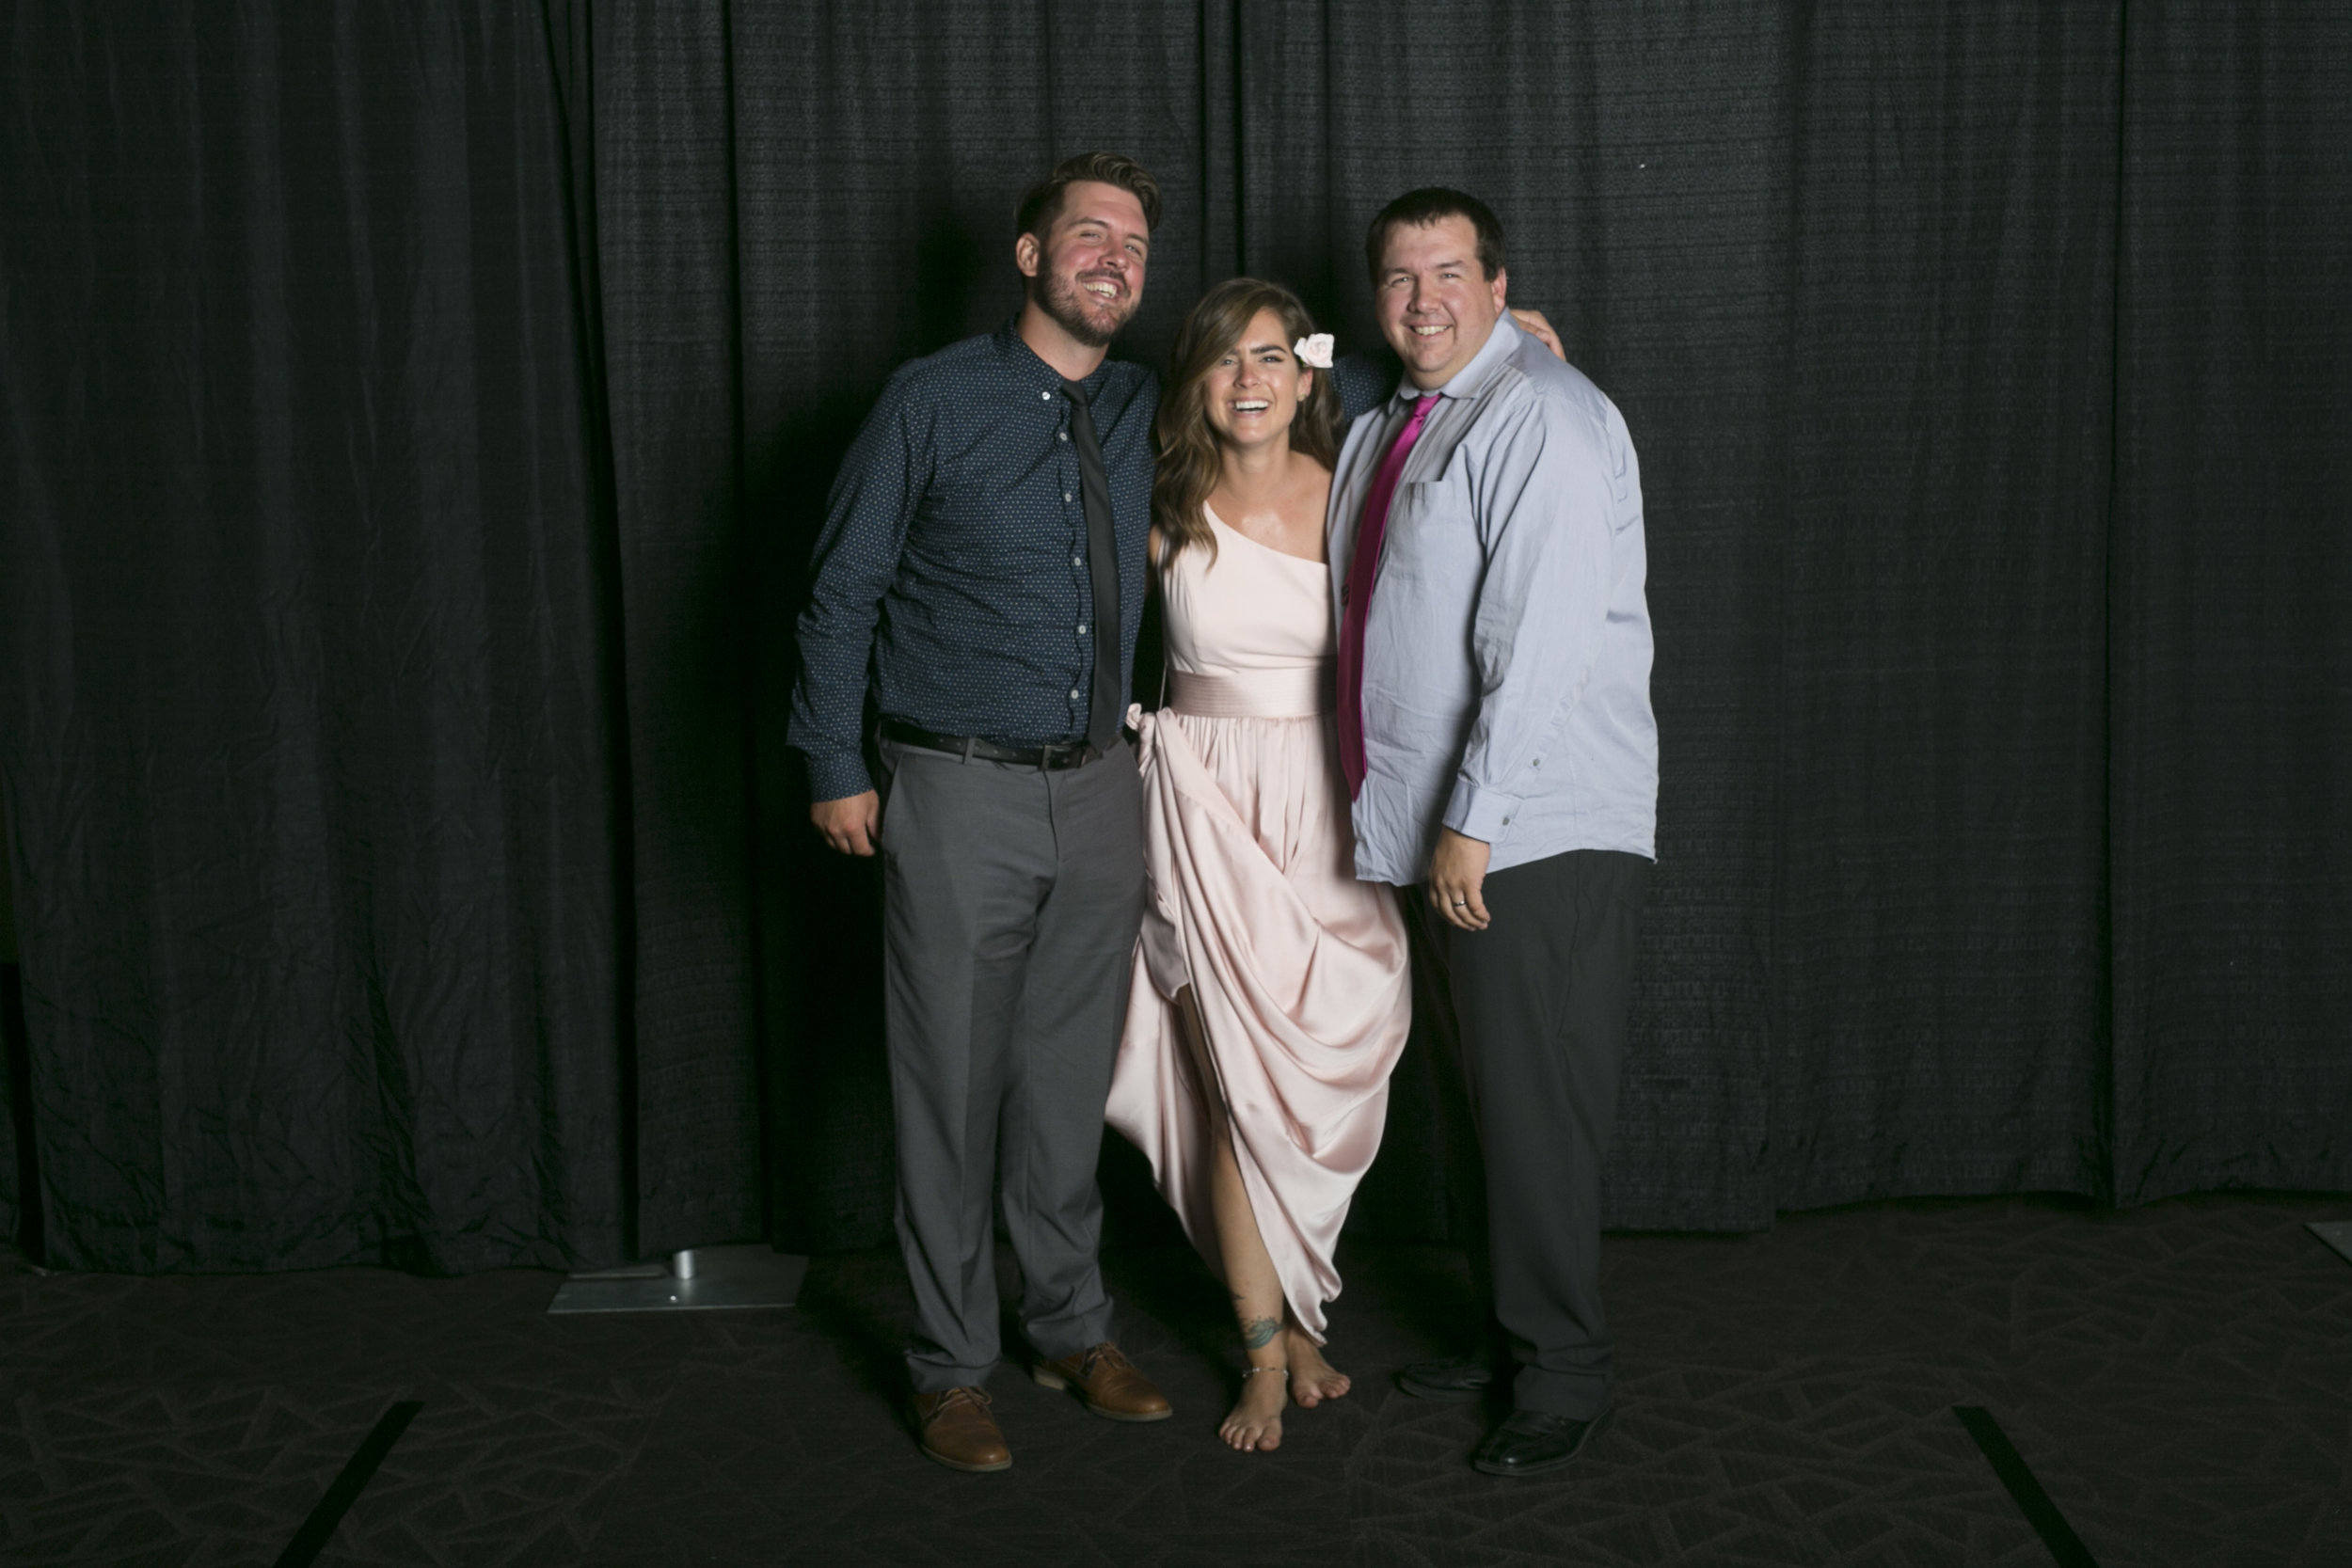 wedding photo booth-136.jpg